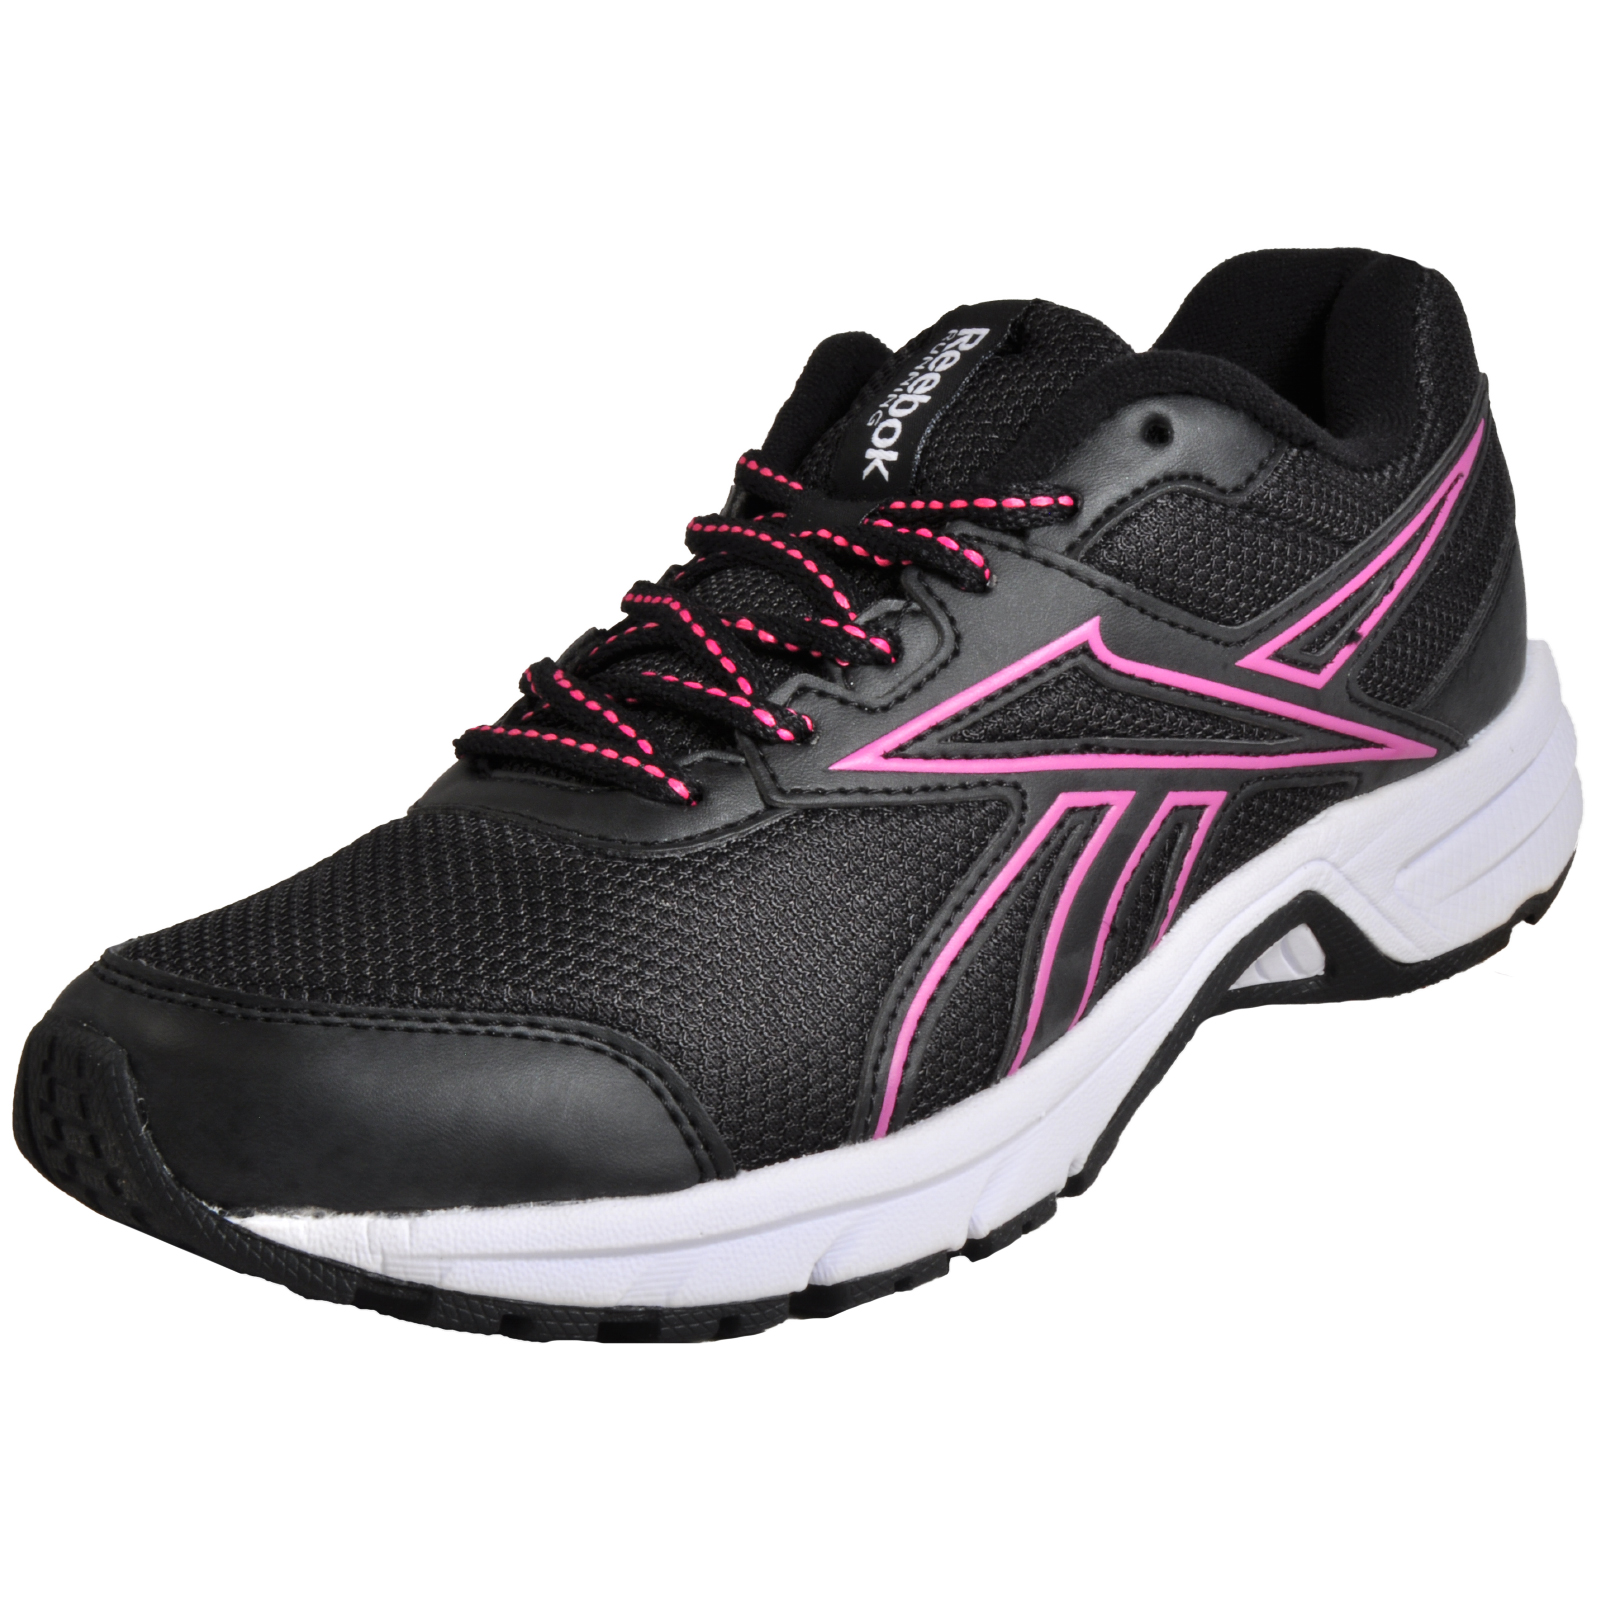 fe395e78e20ac2 Details about Reebok Centerfire RS Women s Running Shoes Fitness Gym  Trainers Black